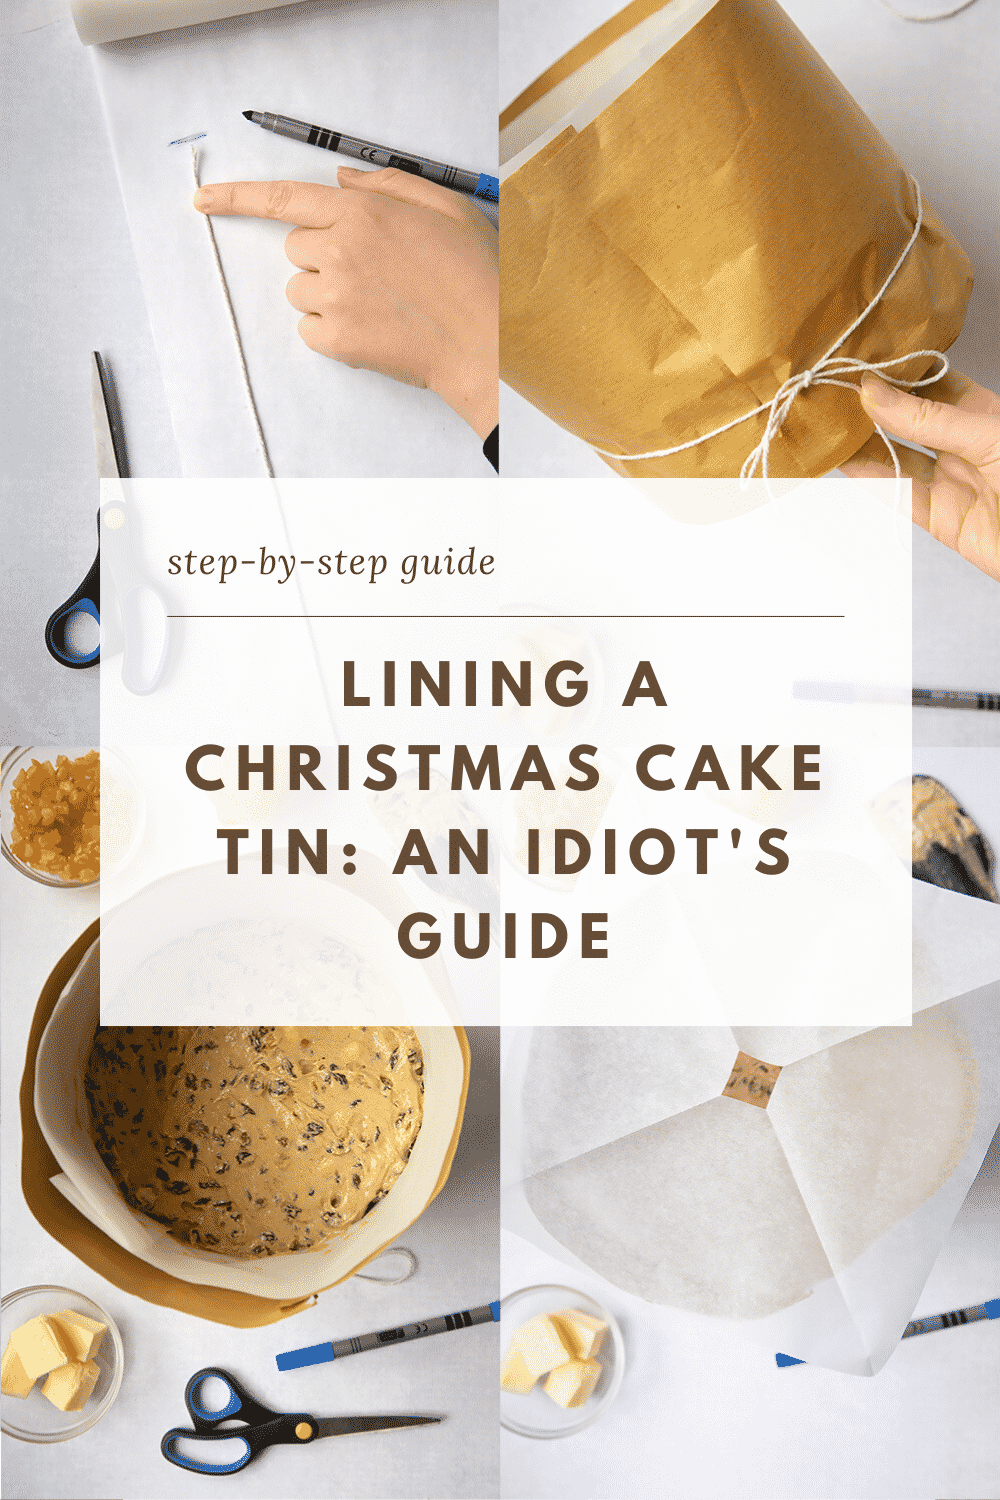 A series of images of tins, brown paper and string illustrate an idiot's guide to lining a Christmas cake tin.